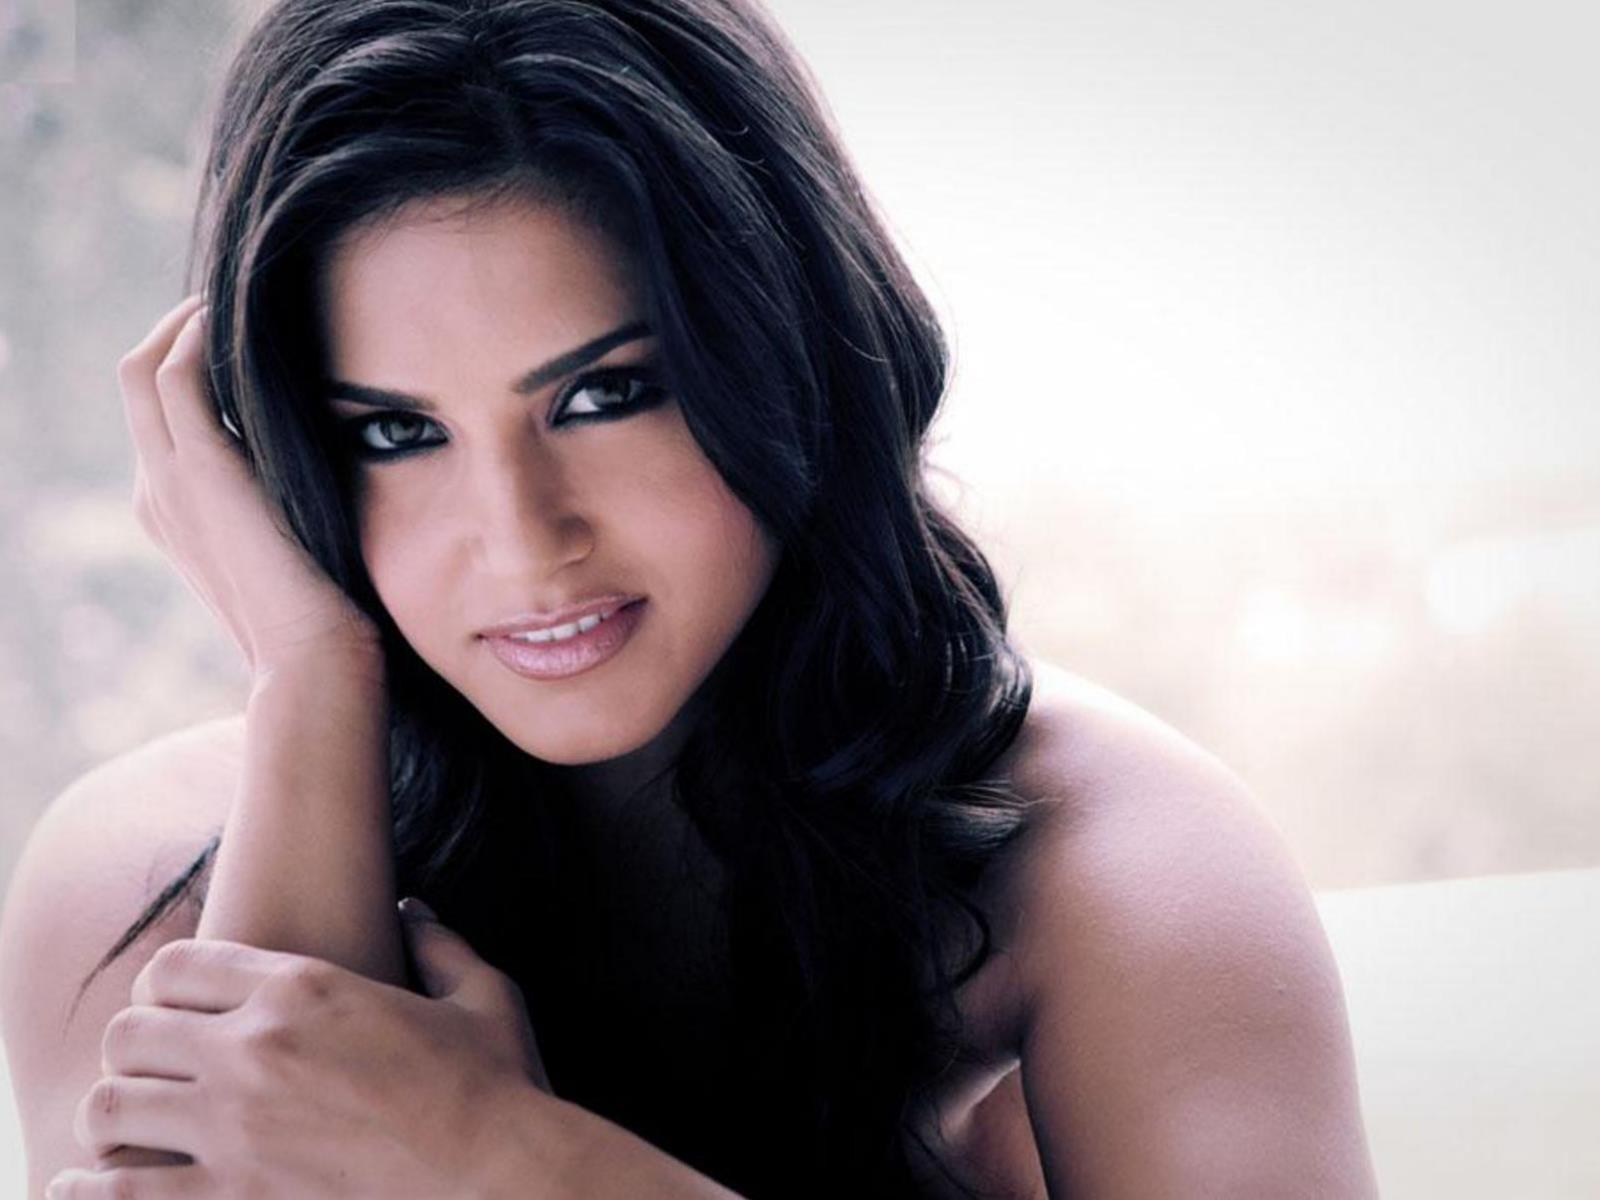 Sunny Leone Wallpaper Bollywood Actresses Wallpaper Bollywood 1600x1200